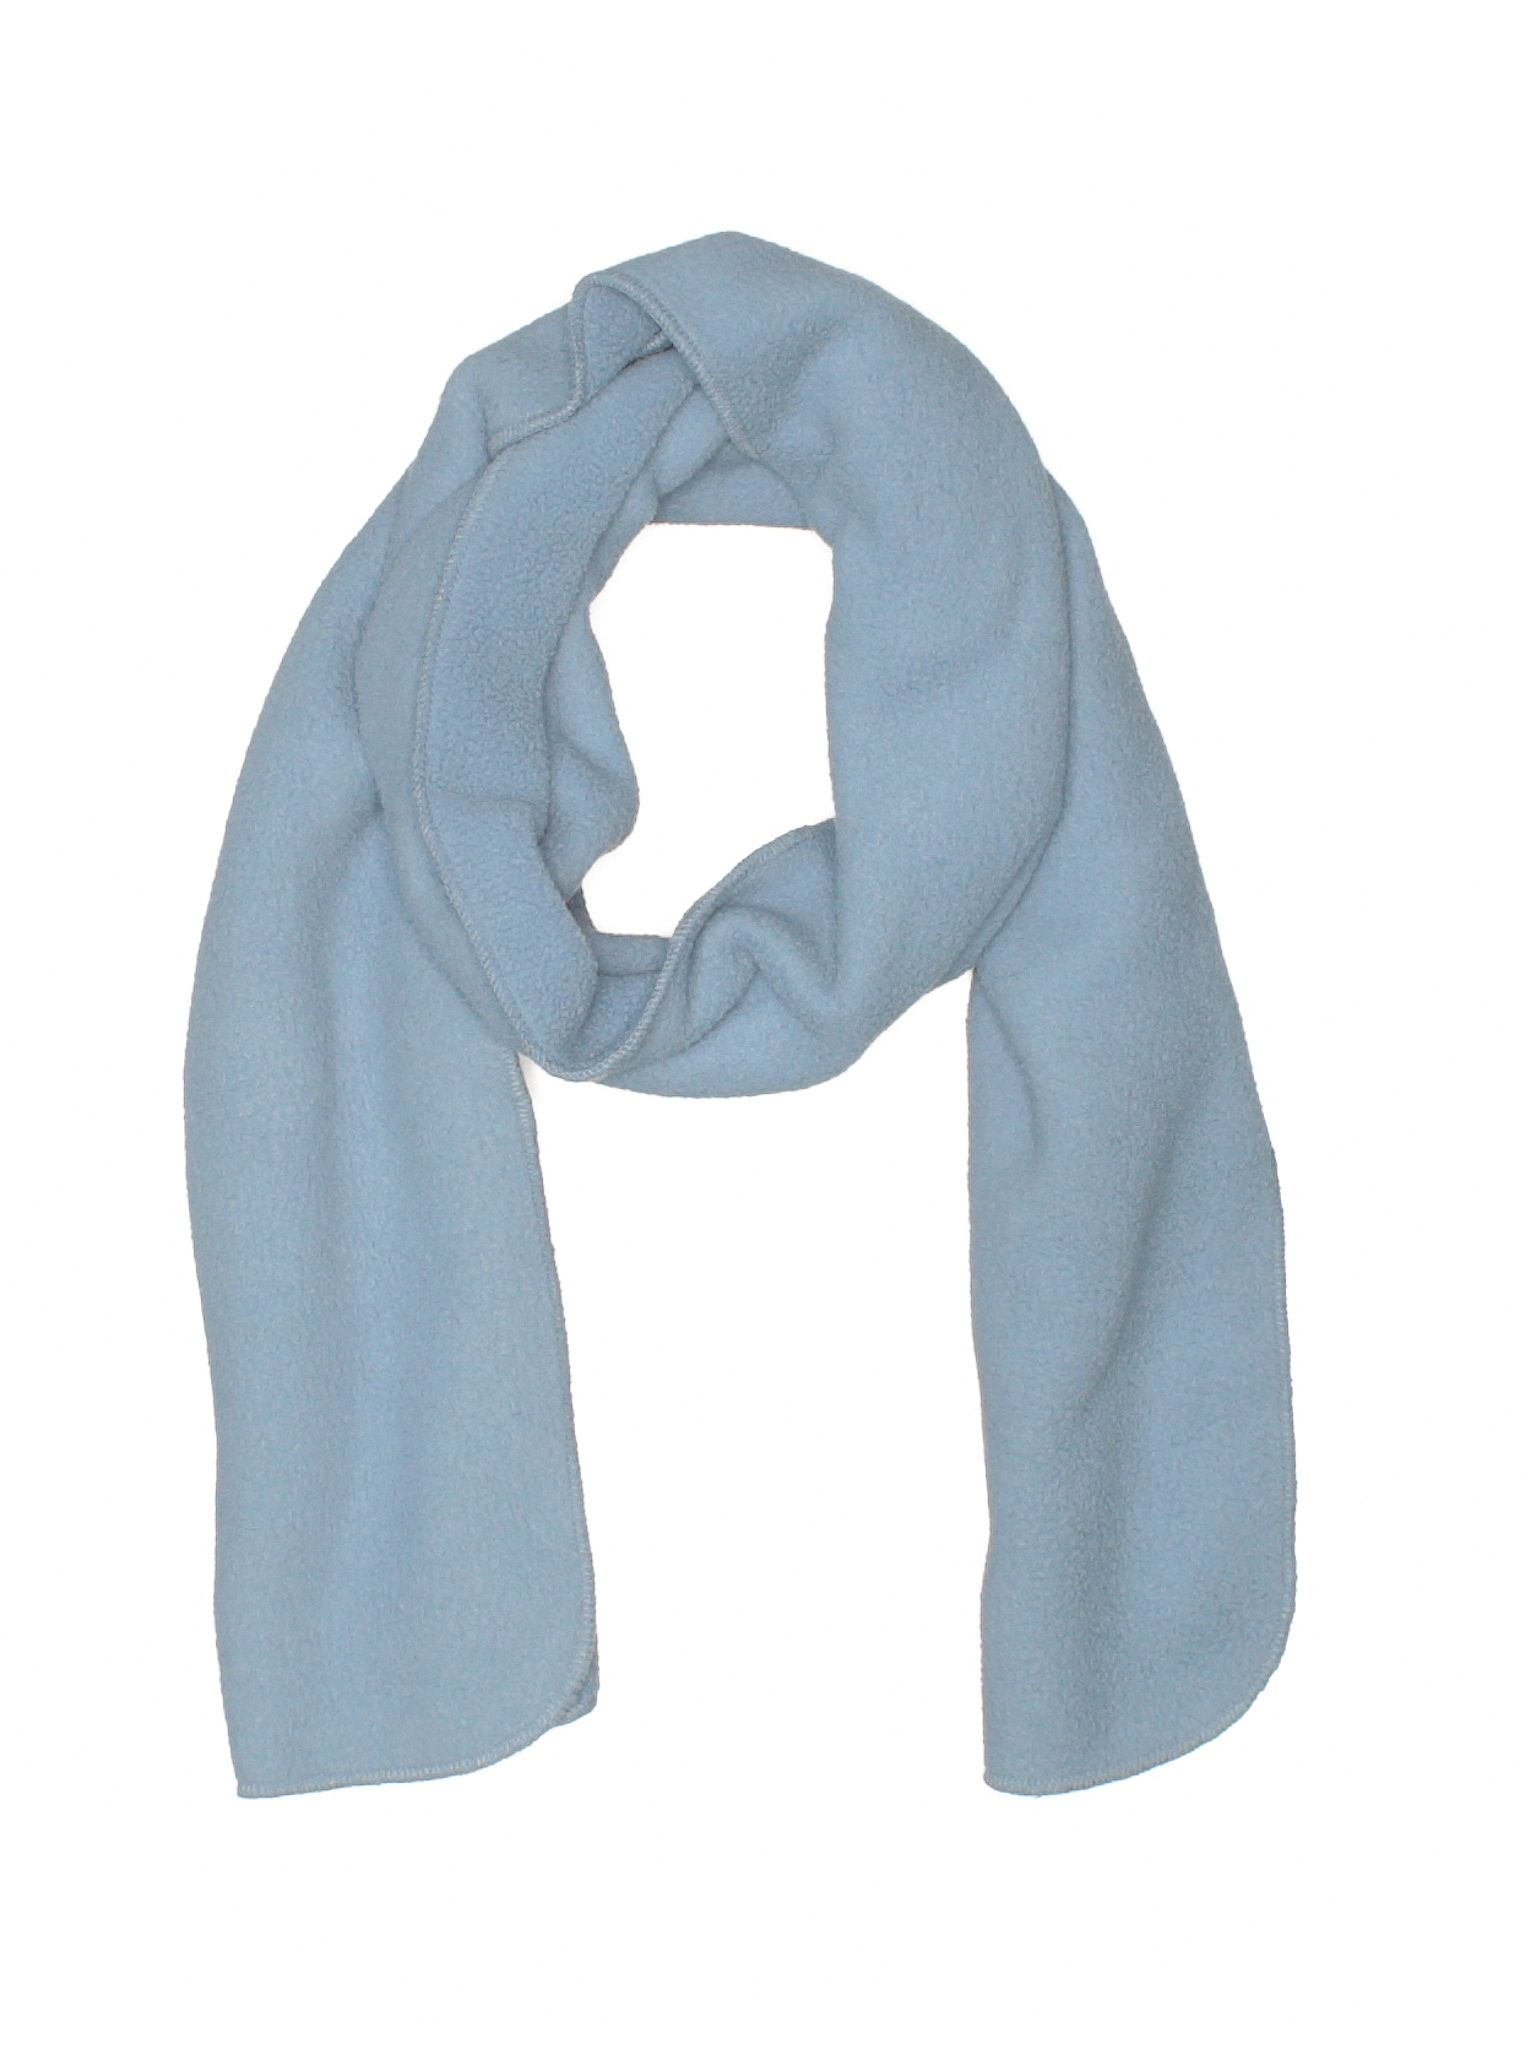 Lands End Scarf Size 000 Blue Womens Accessories  $1499